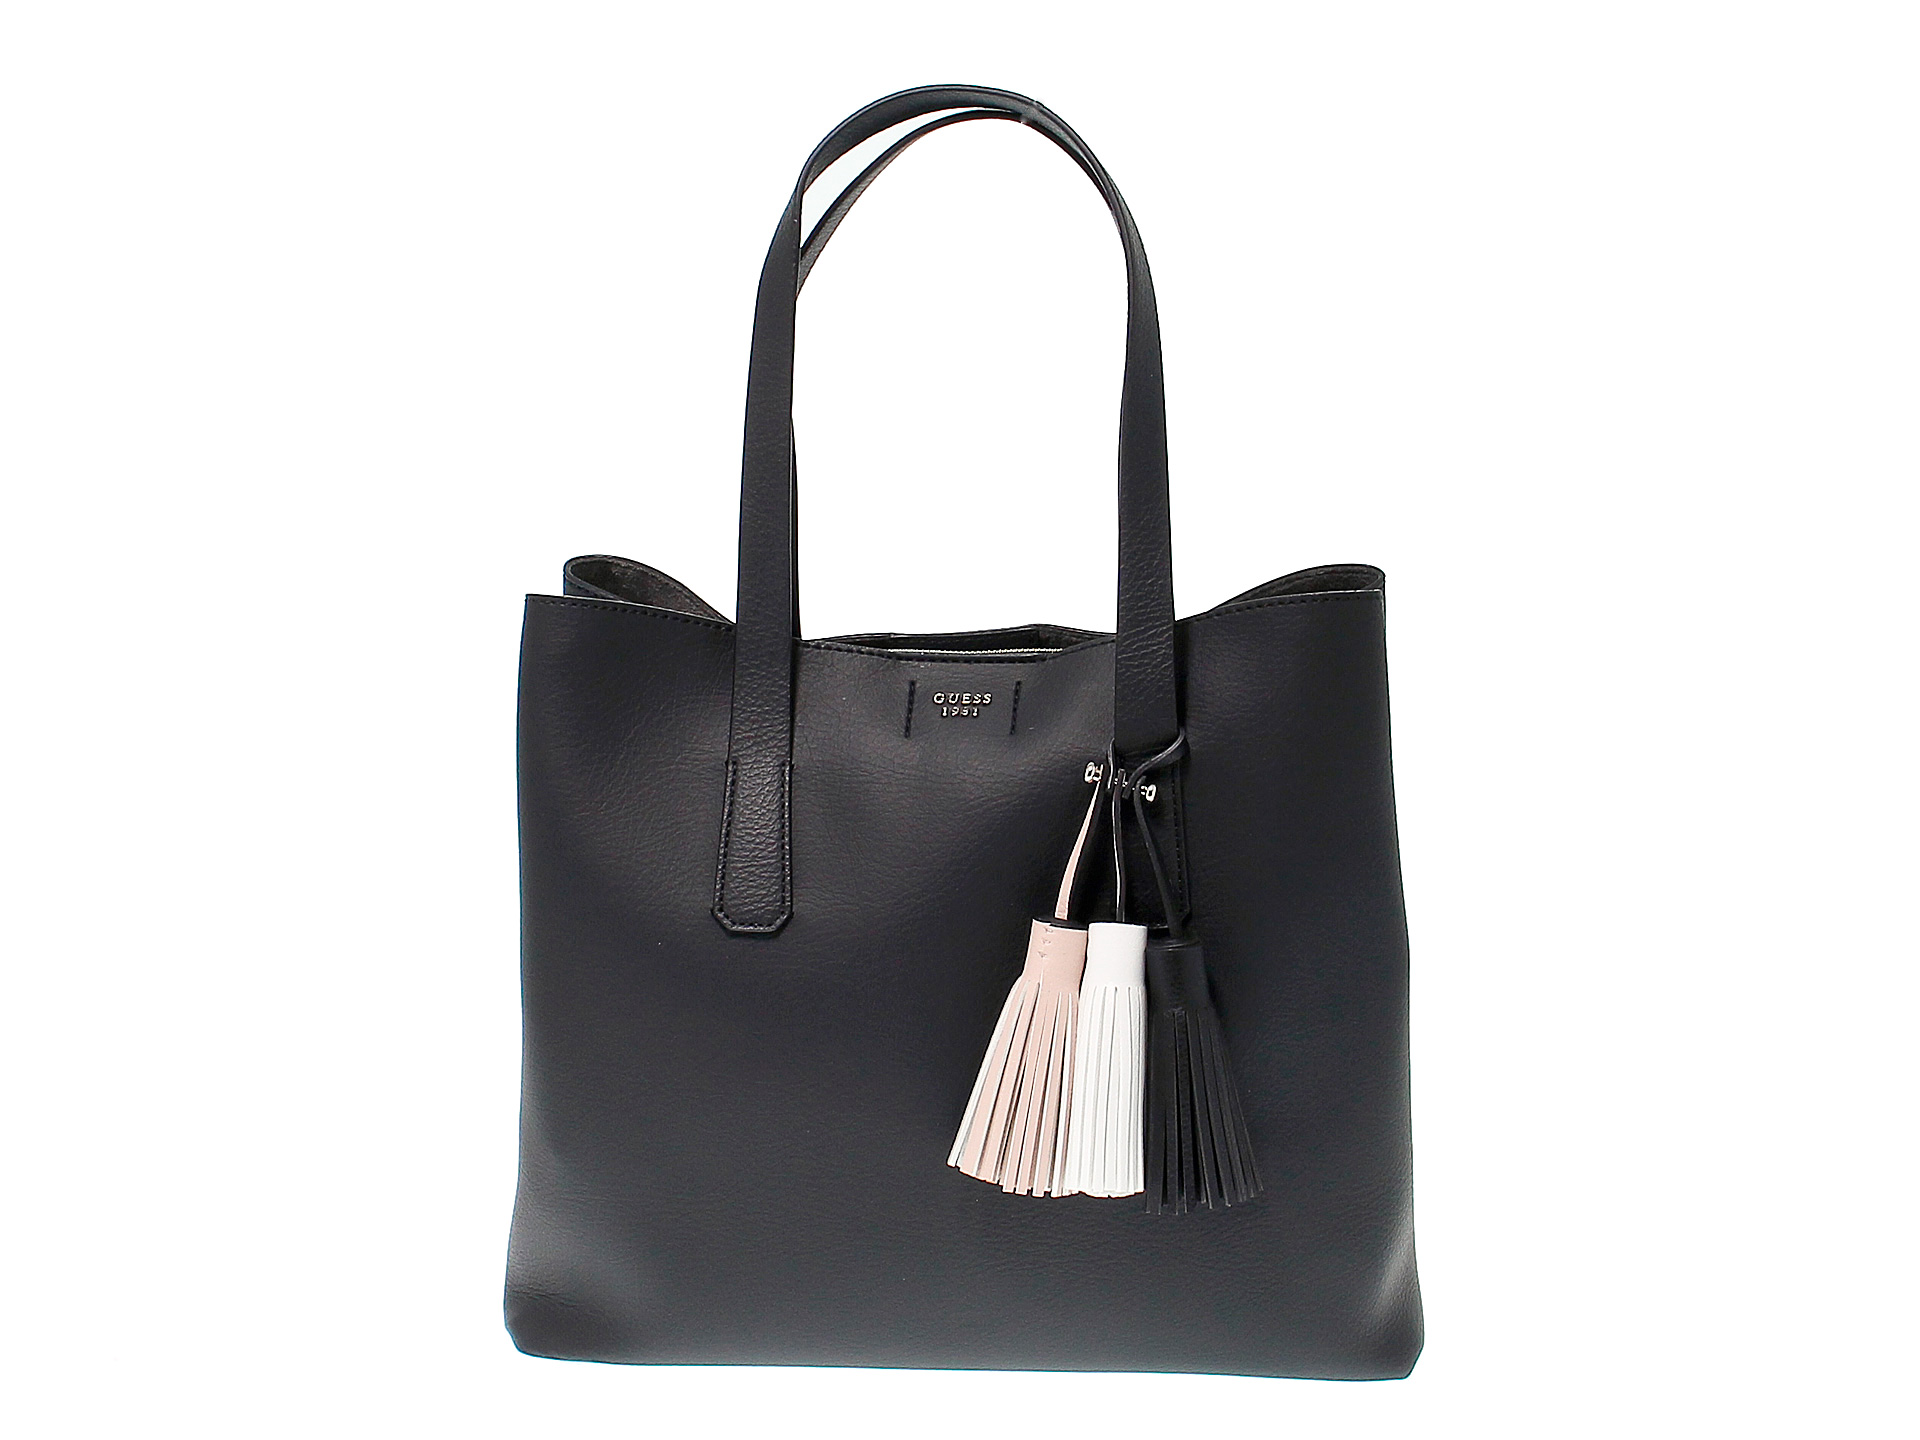 Trudy Tote Tote Cabas Trudy Cabas Guess Guess Cabas BCxedo